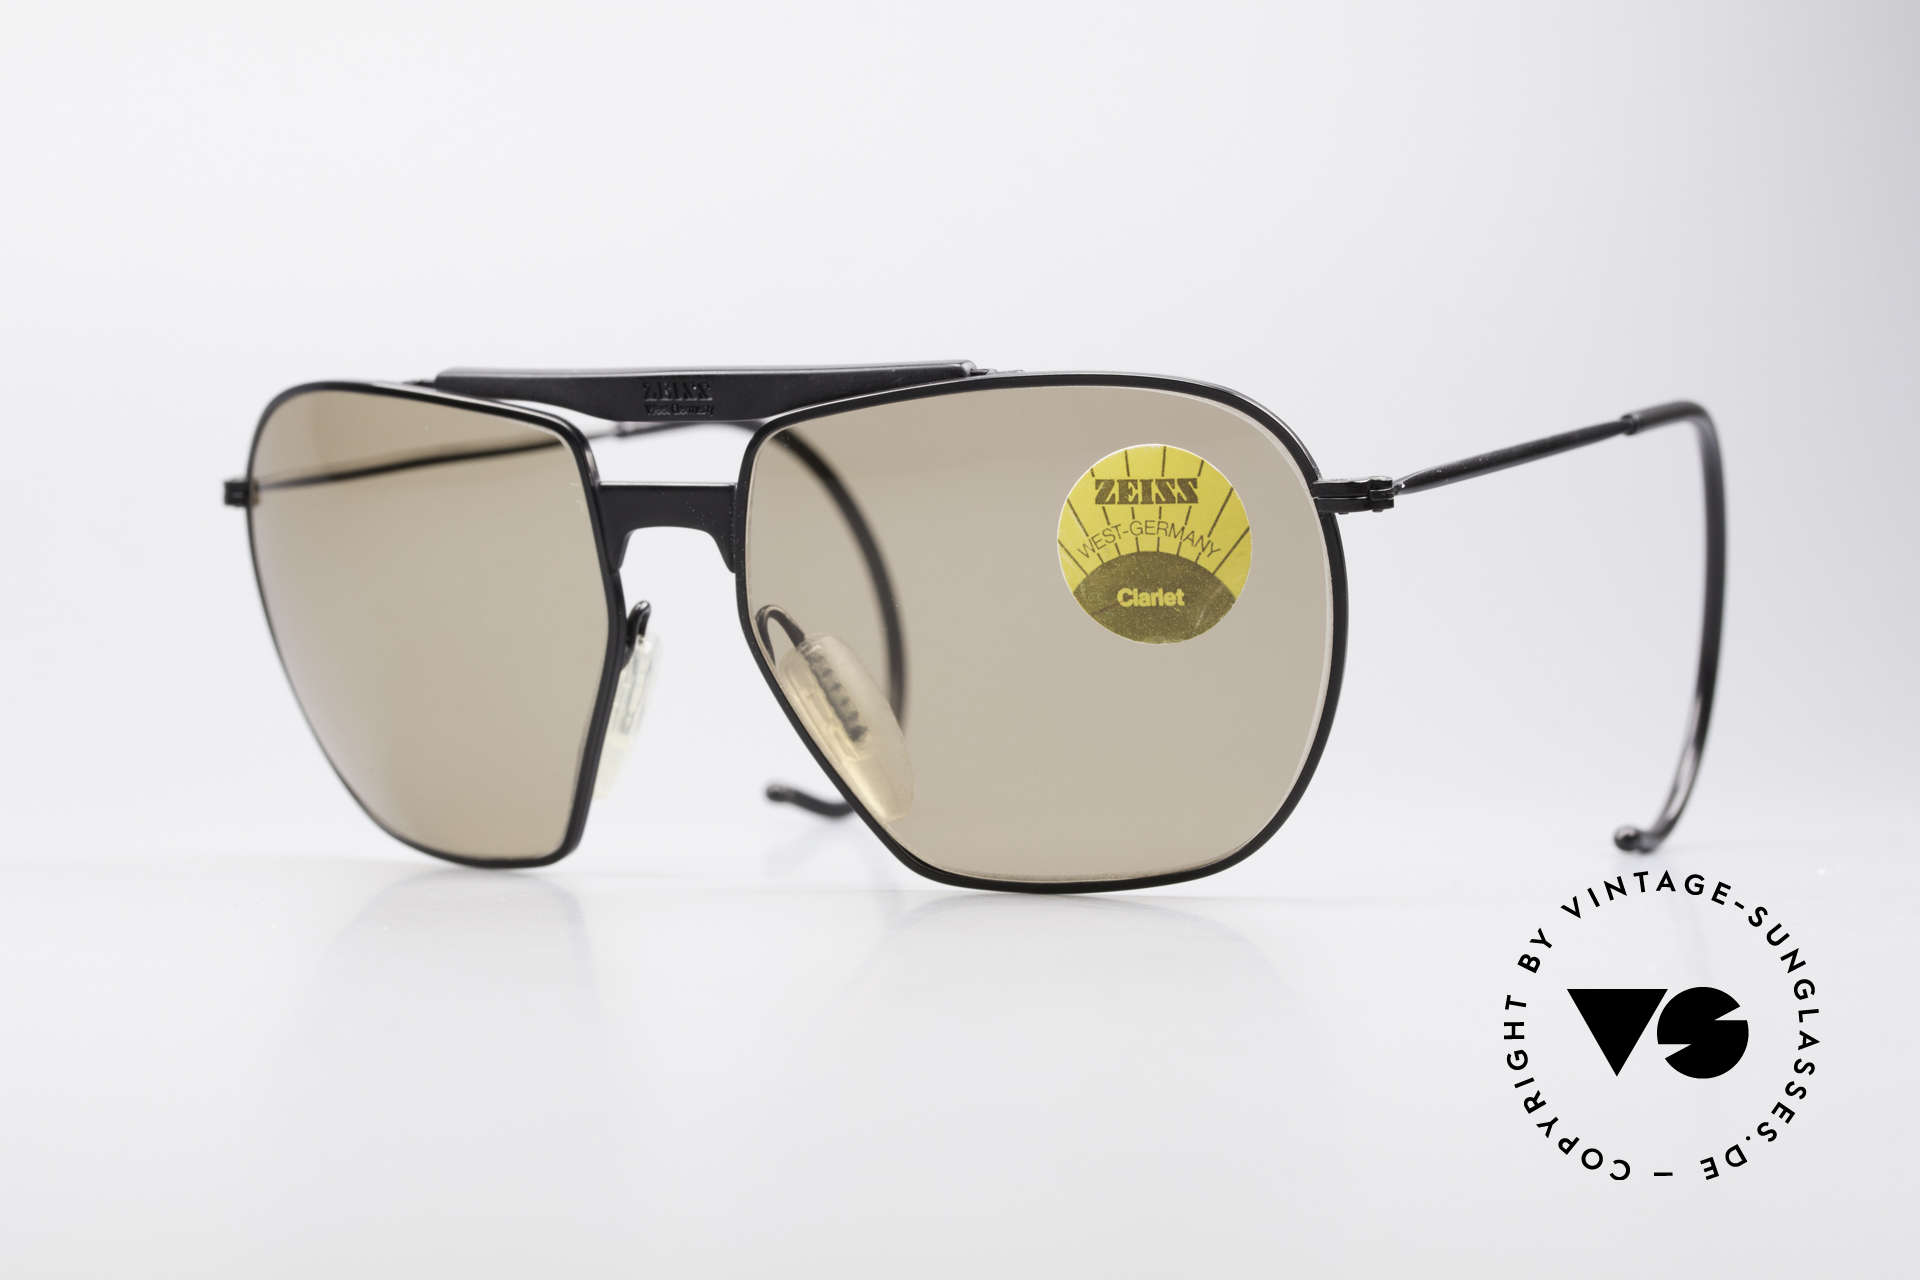 Zeiss 9911 Sport Vintage Sunglasses 80's, legendary classic sunglasses by ZEISS, MEDIUM size, Made for Men